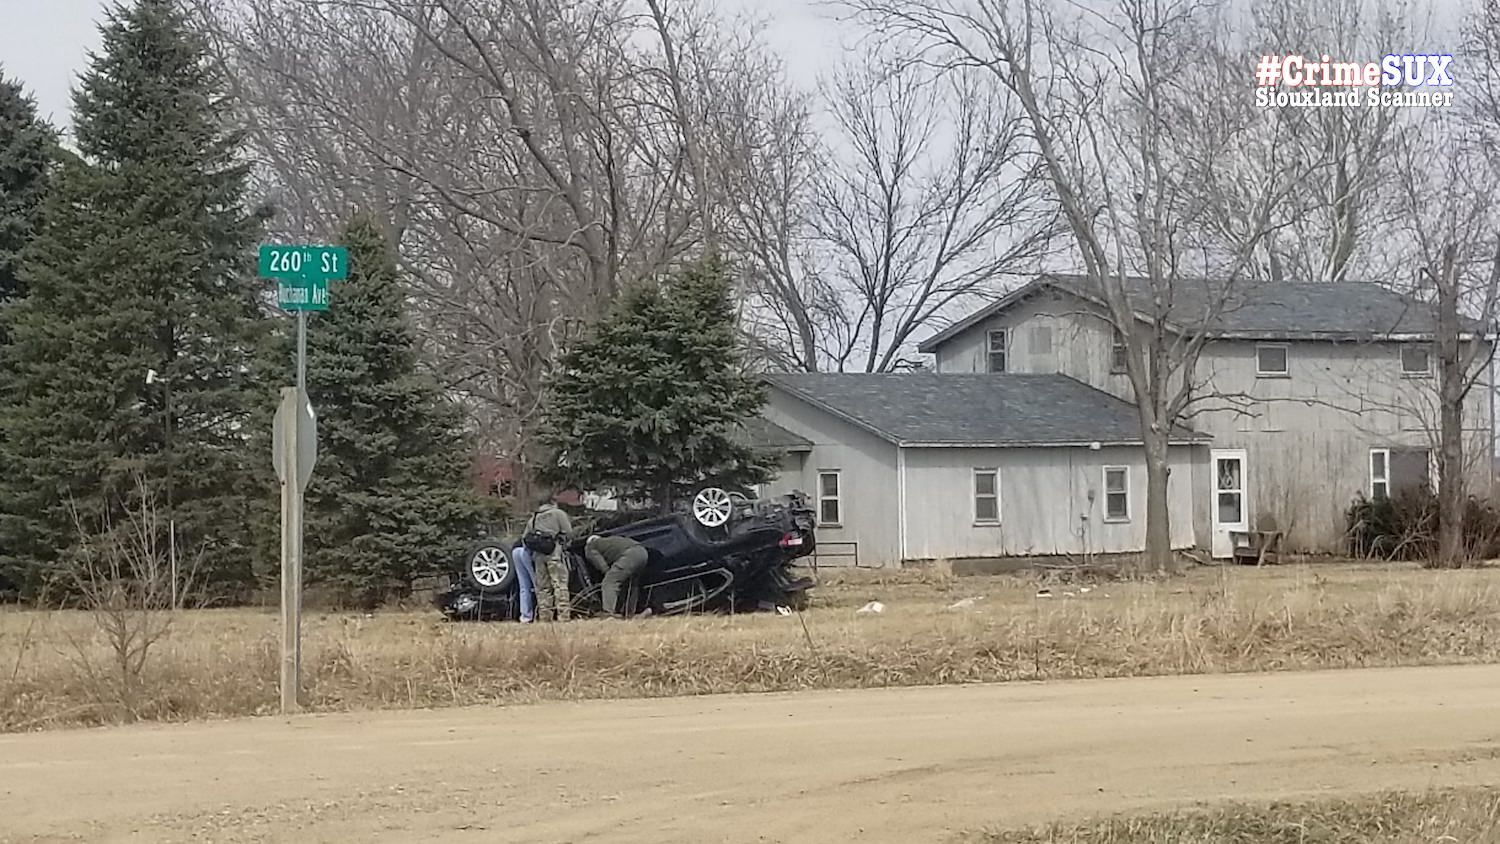 Moville bank robbery suspect in custody after short pursuit that ended in crash near Salix